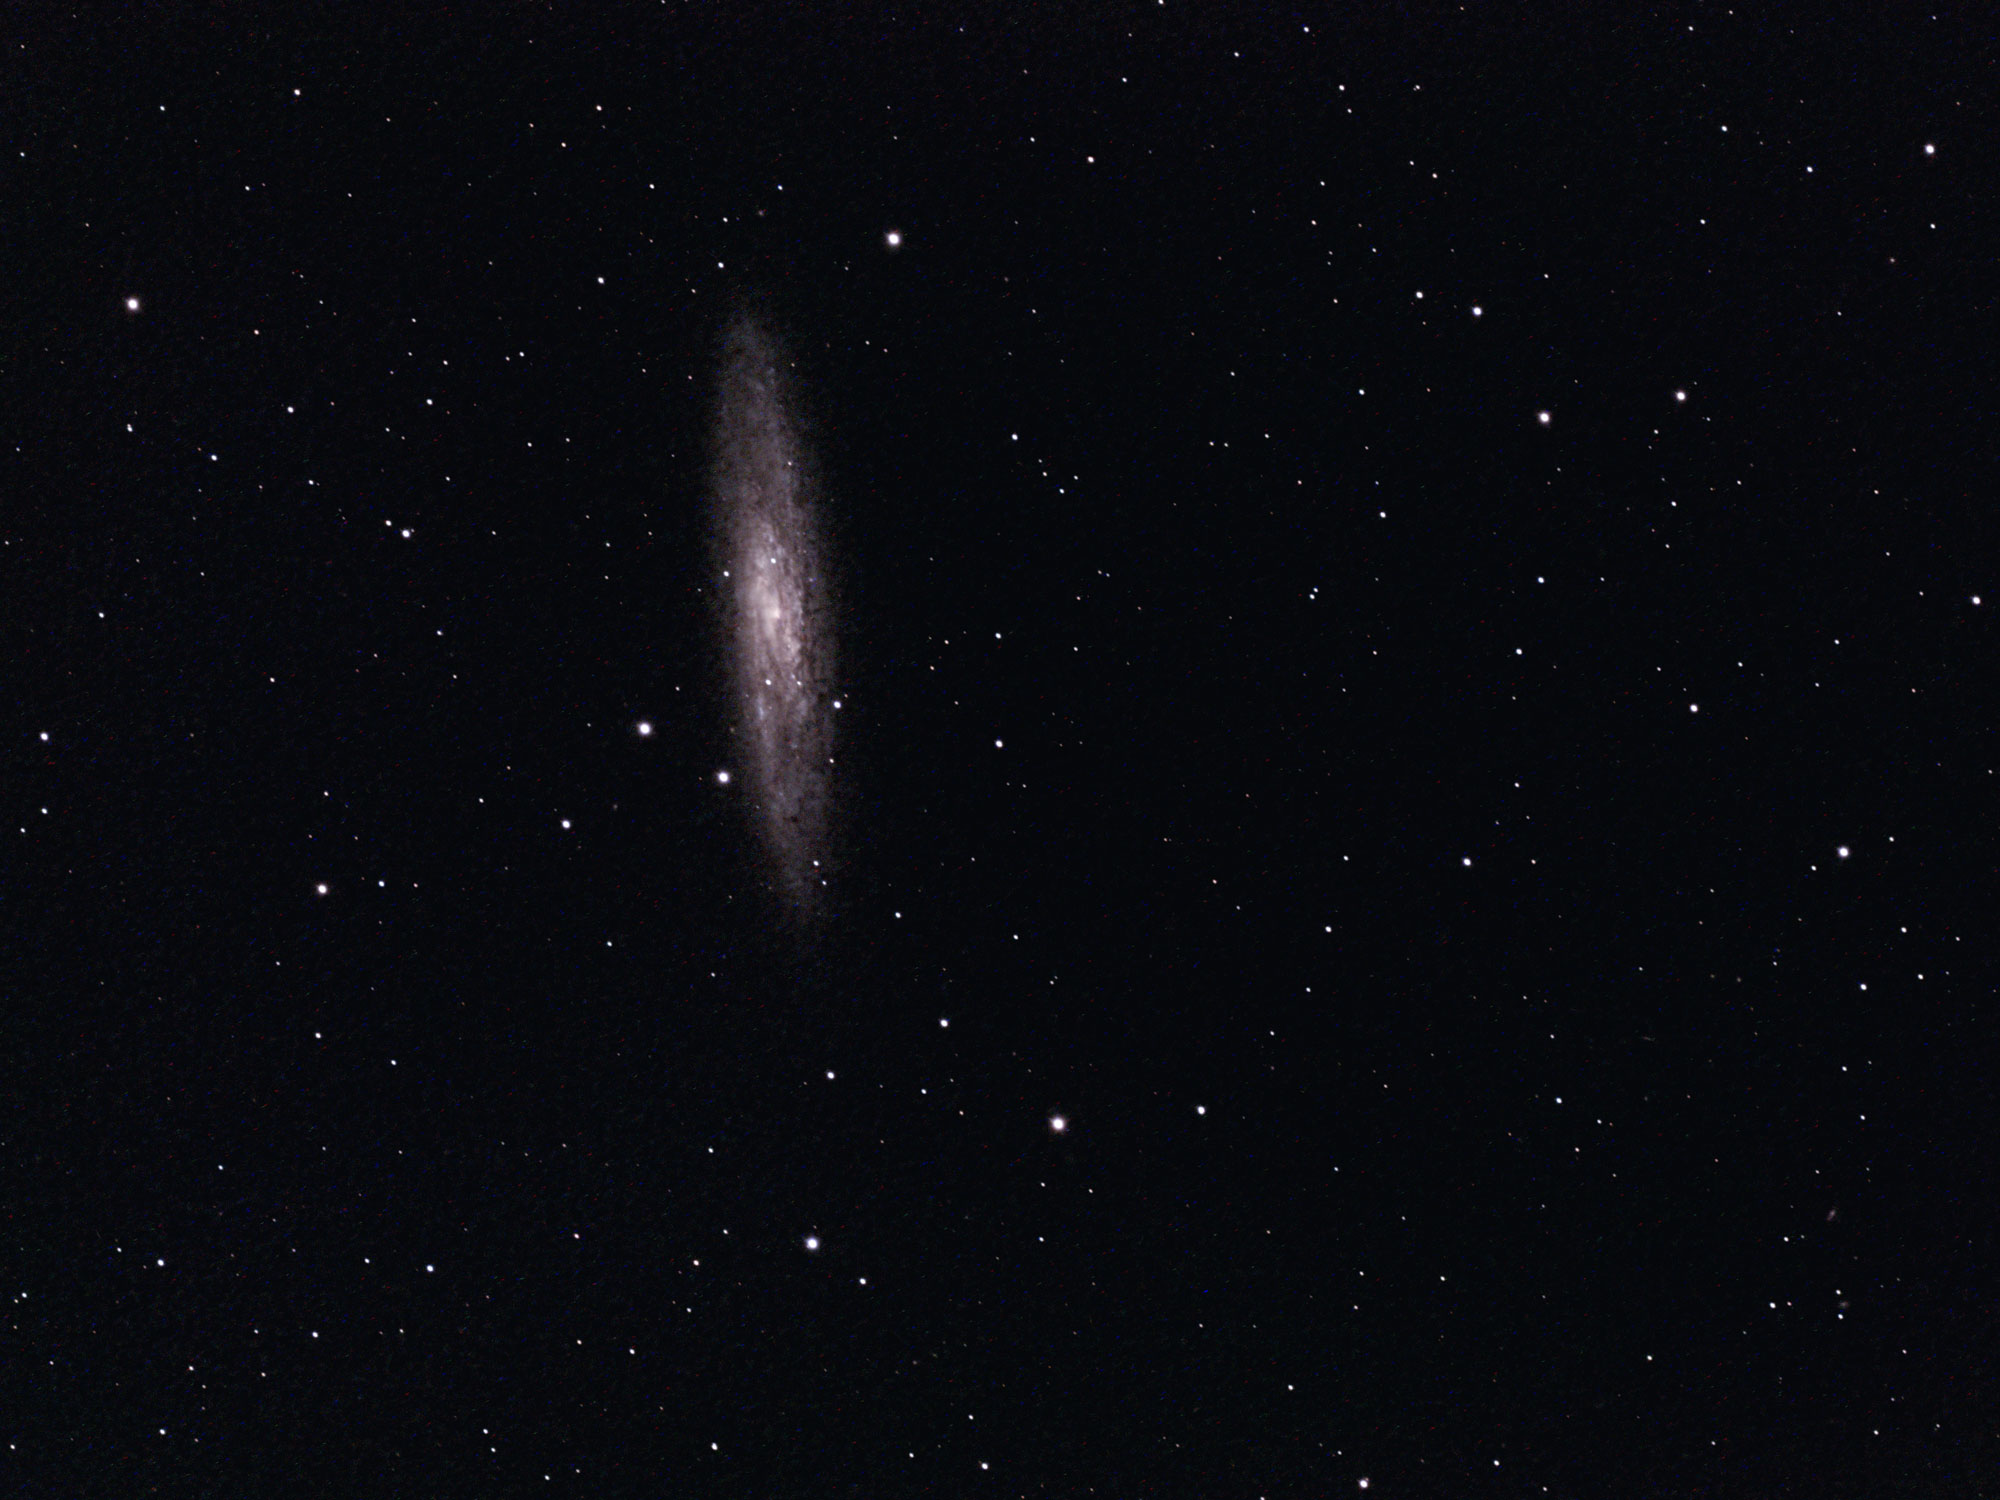 Sculpture Galaxy NGC 253 William Optics GT 102 ASI 294 astrophotography camera